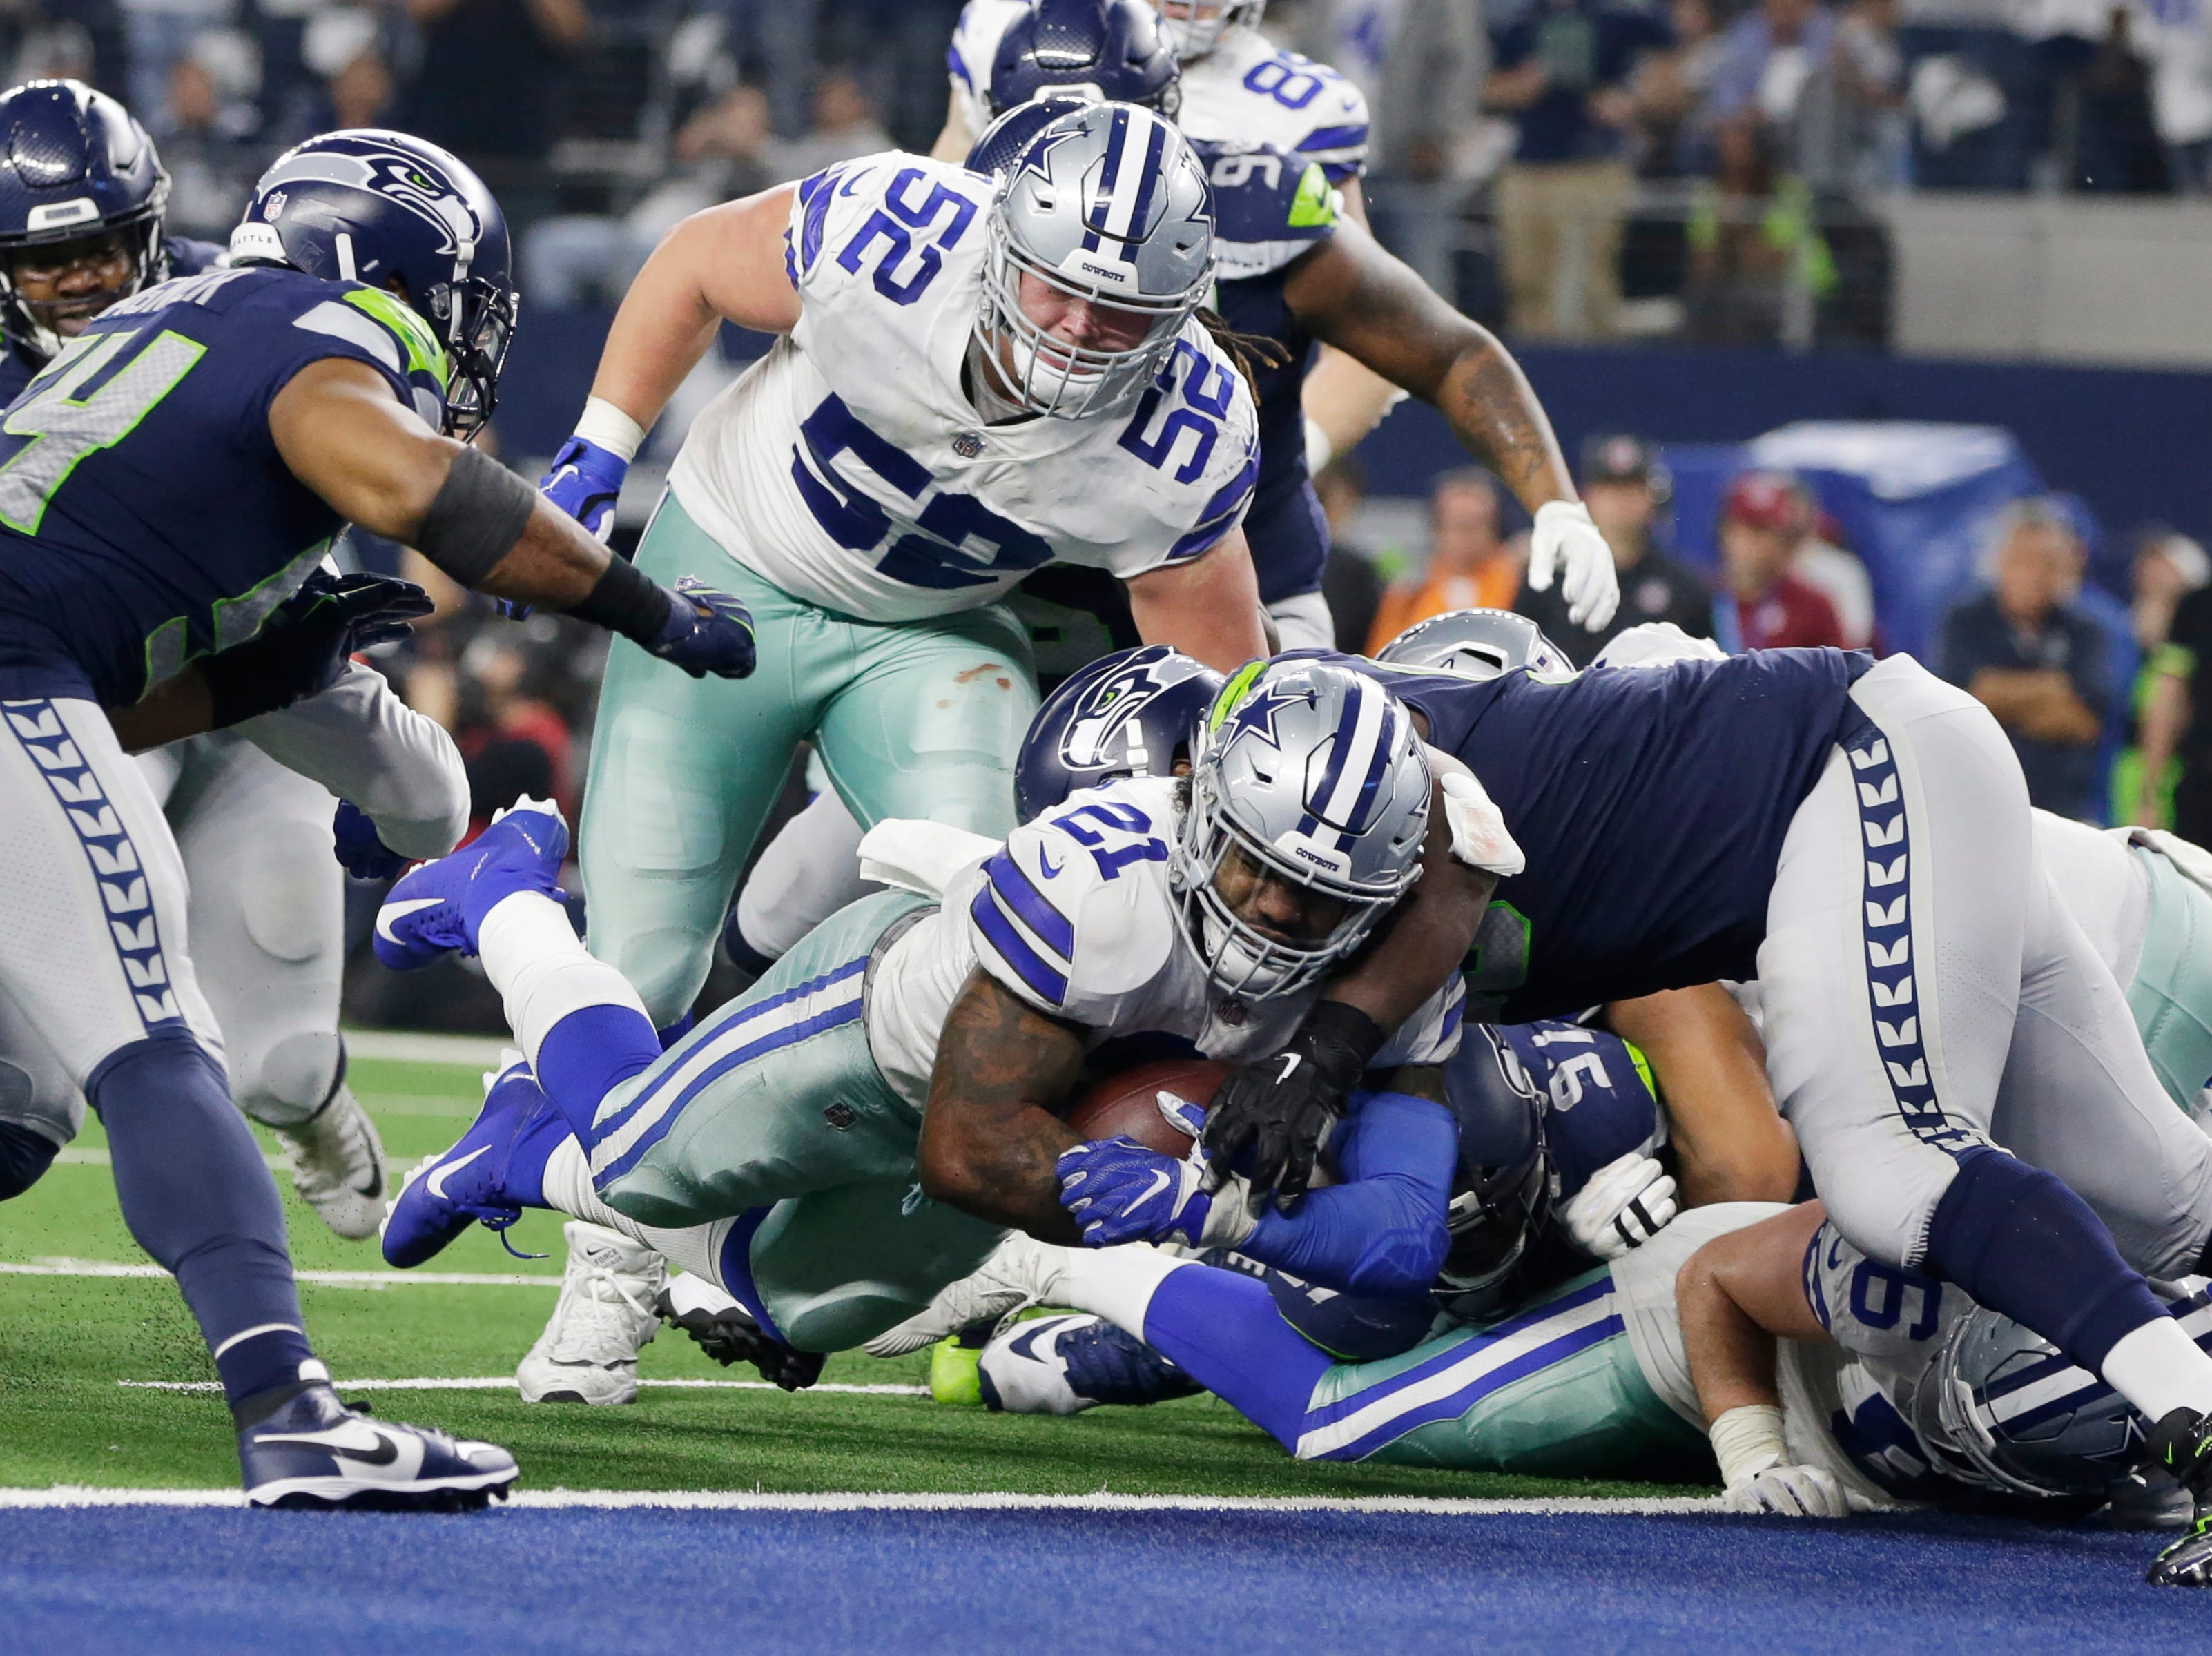 Dallas Cowboys running back Ezekiel Elliott (21) scores a touchdown in the fourth quarter against the Seattle Seahawks at AT&T Stadium.